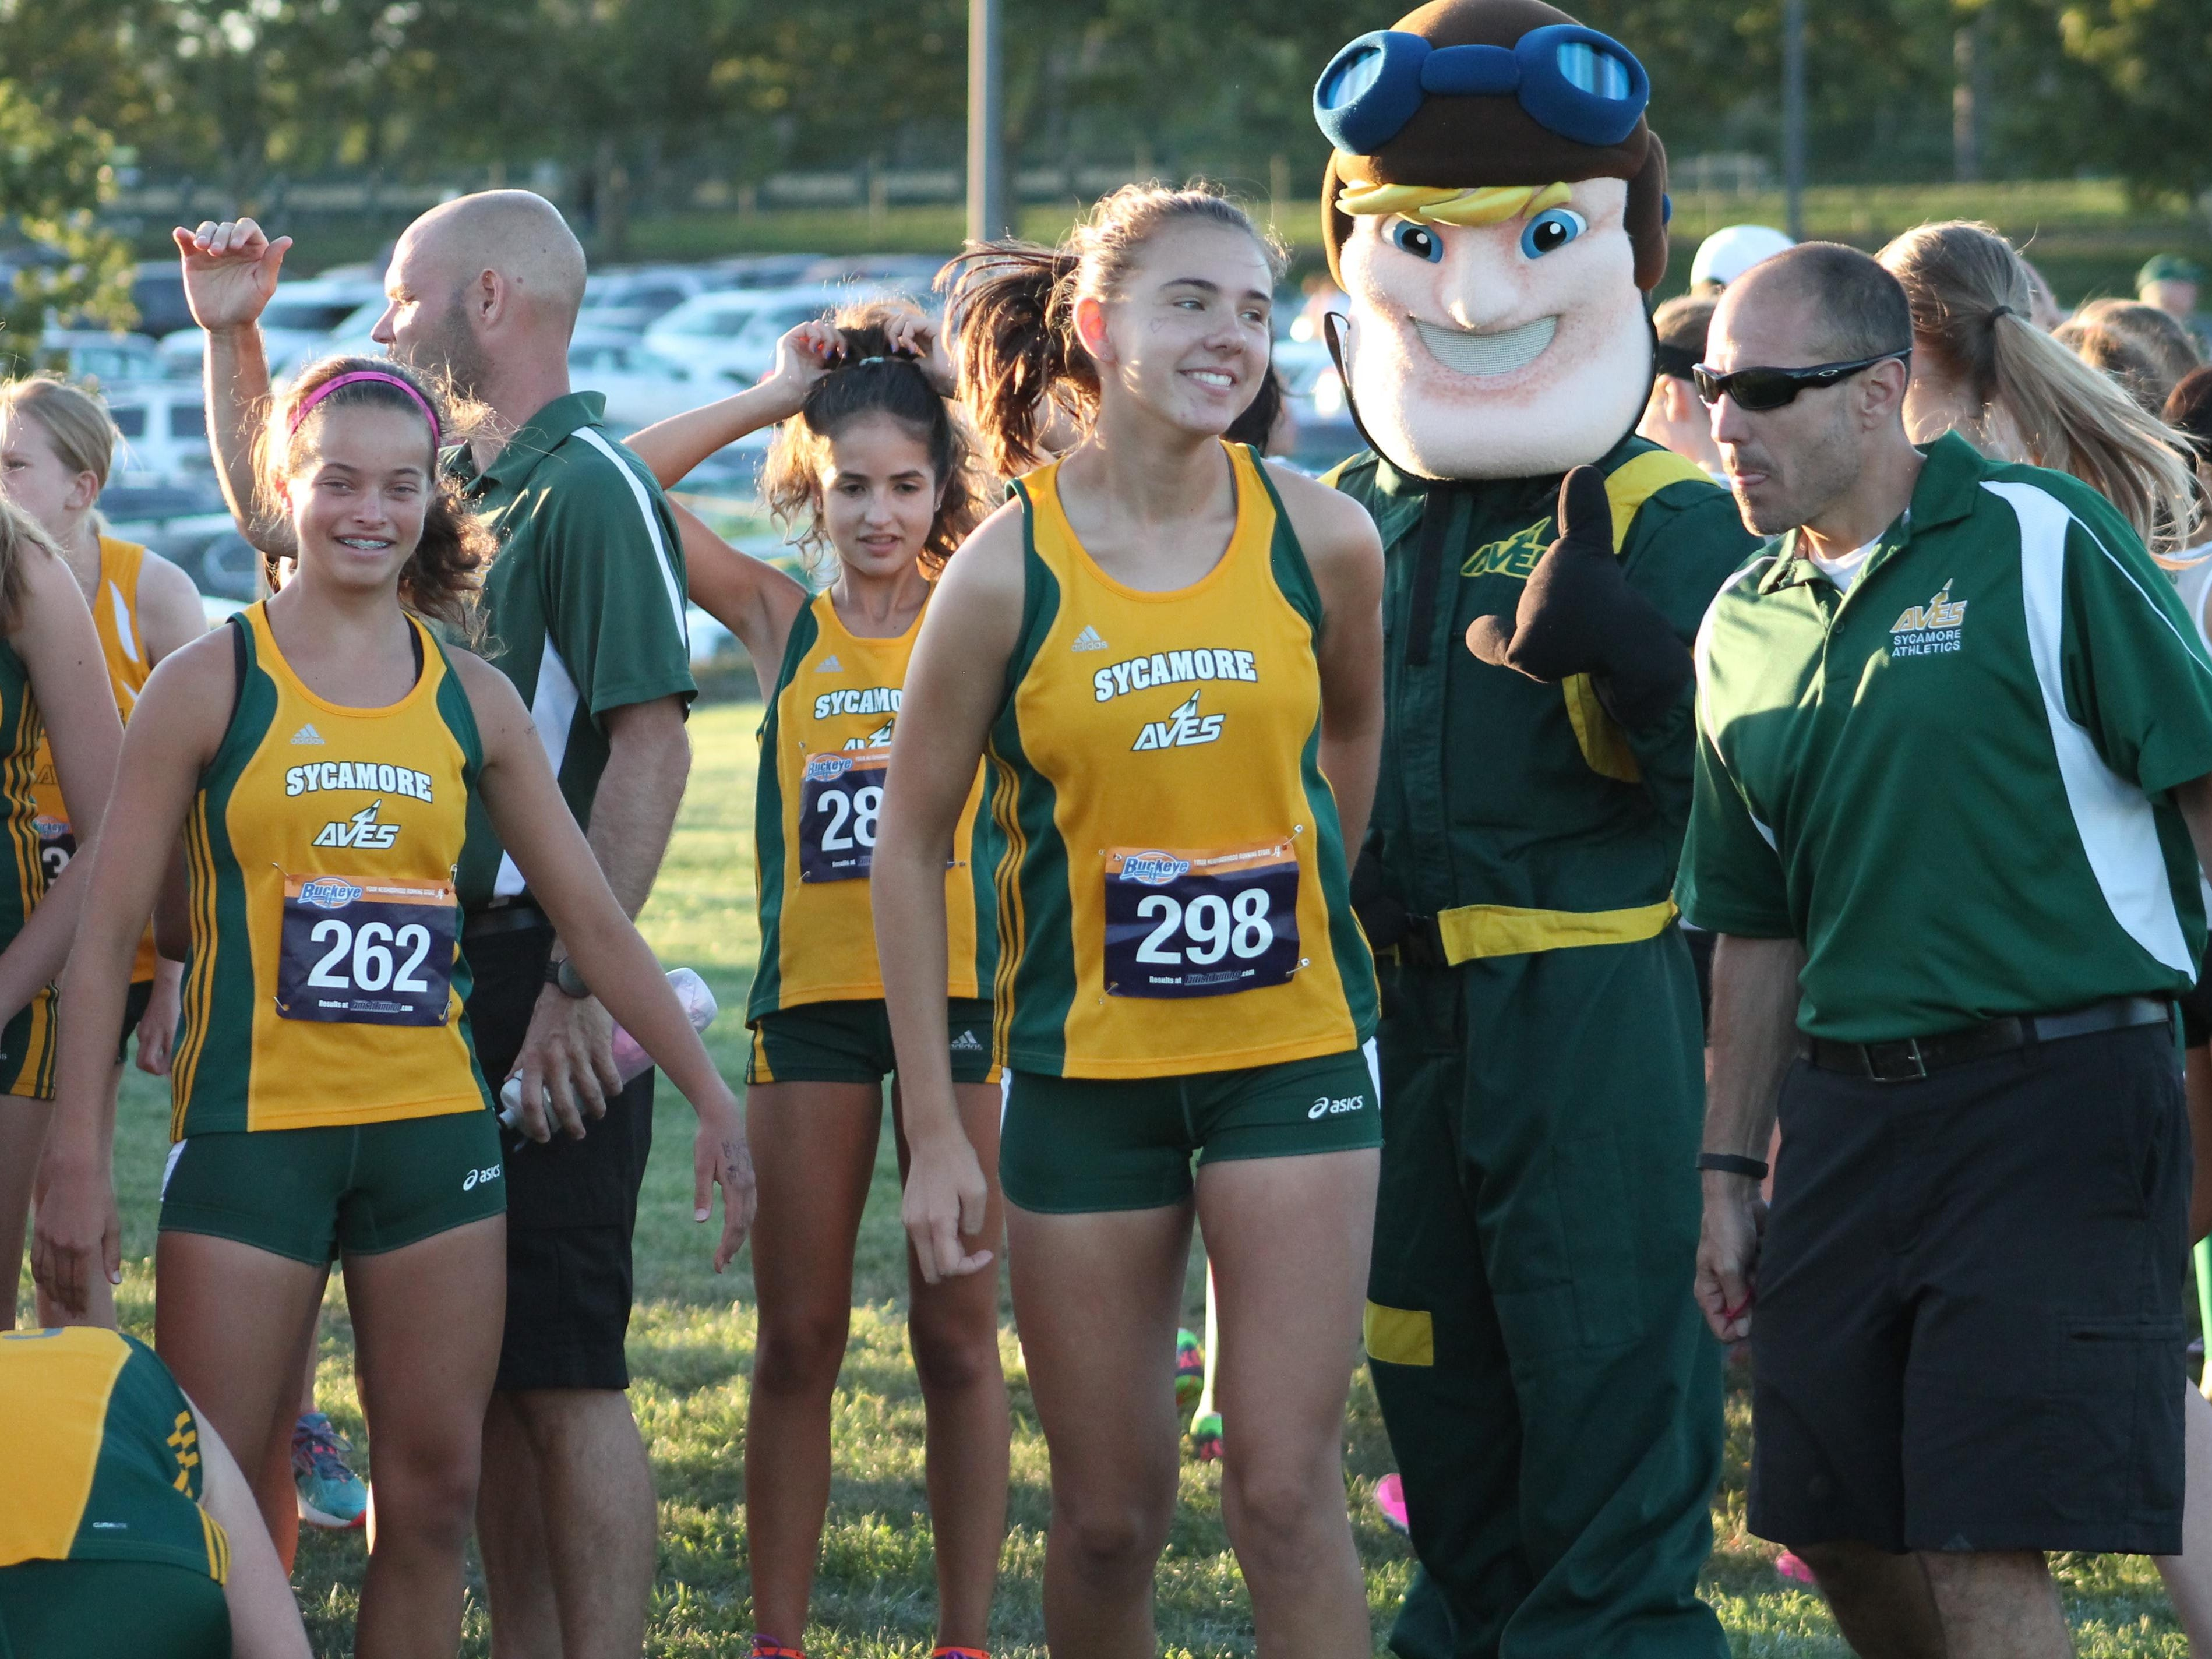 Sycamore's girls cross country team along with the Aviator mascot prepare for the start of the Sycamore Sunset Invitational Aug. 24.